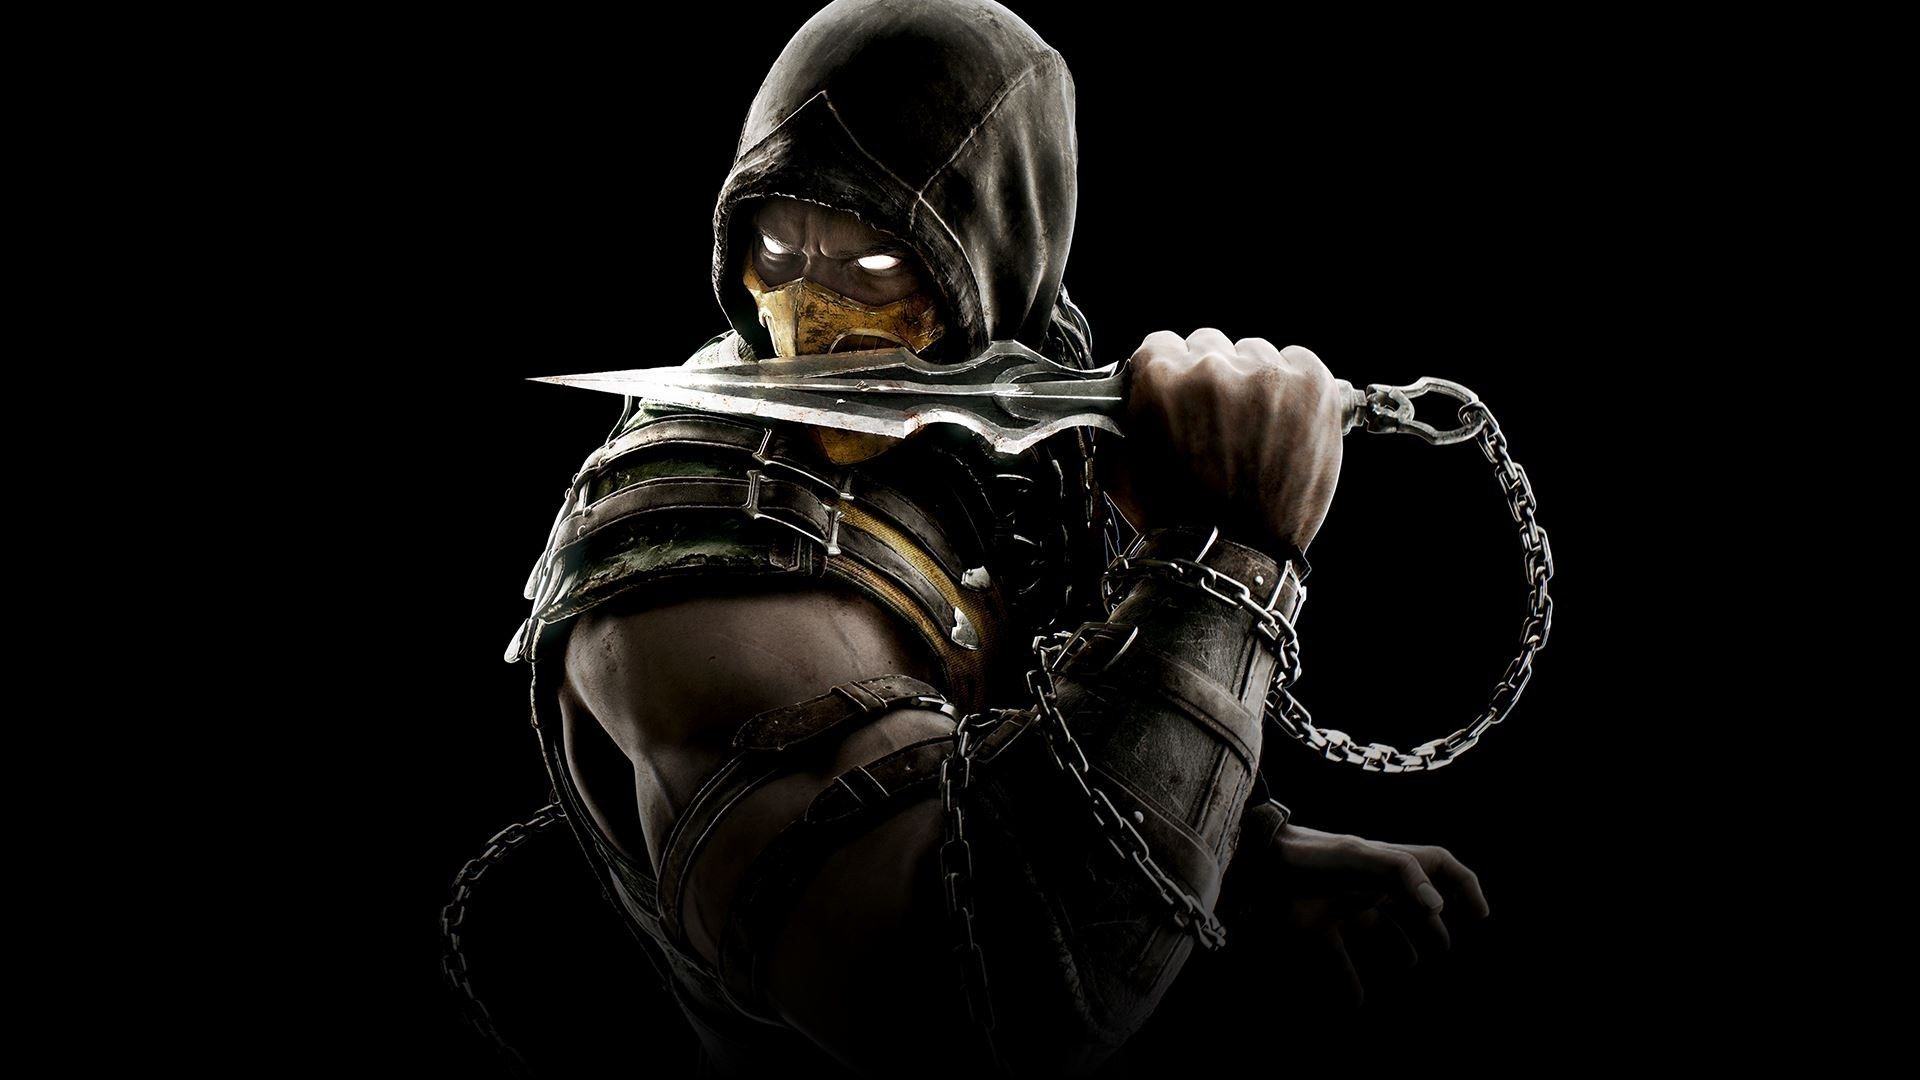 scorpion mortal kombat computer wallpaper | ololoshenka | pinterest